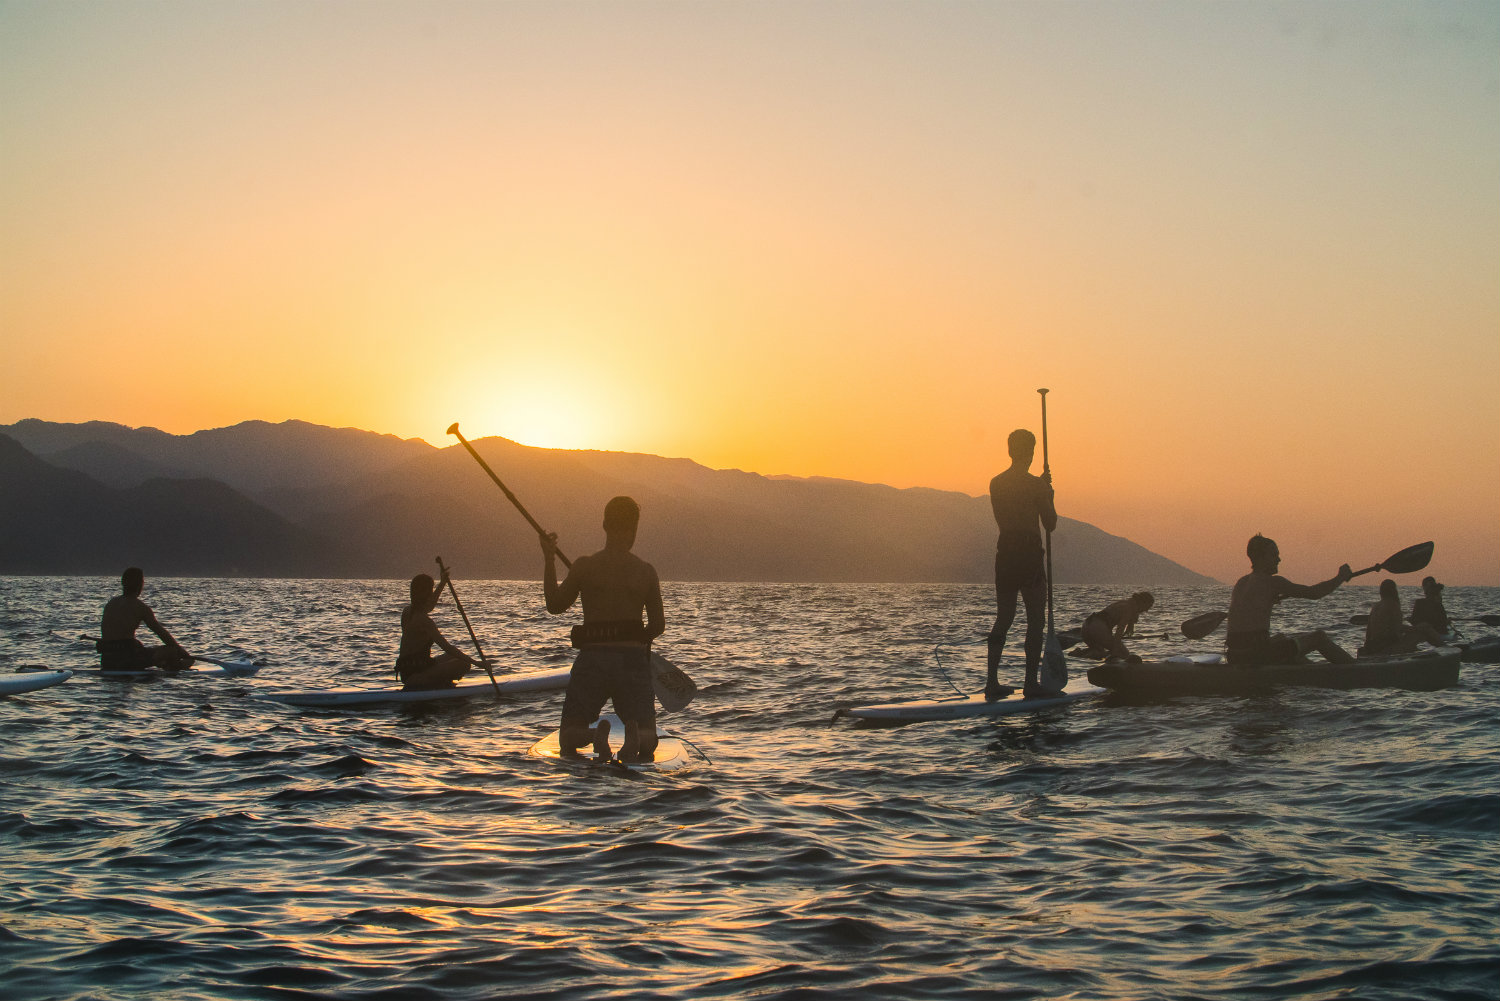 DISCOVER vallarta'S MAGIC - three adventures included